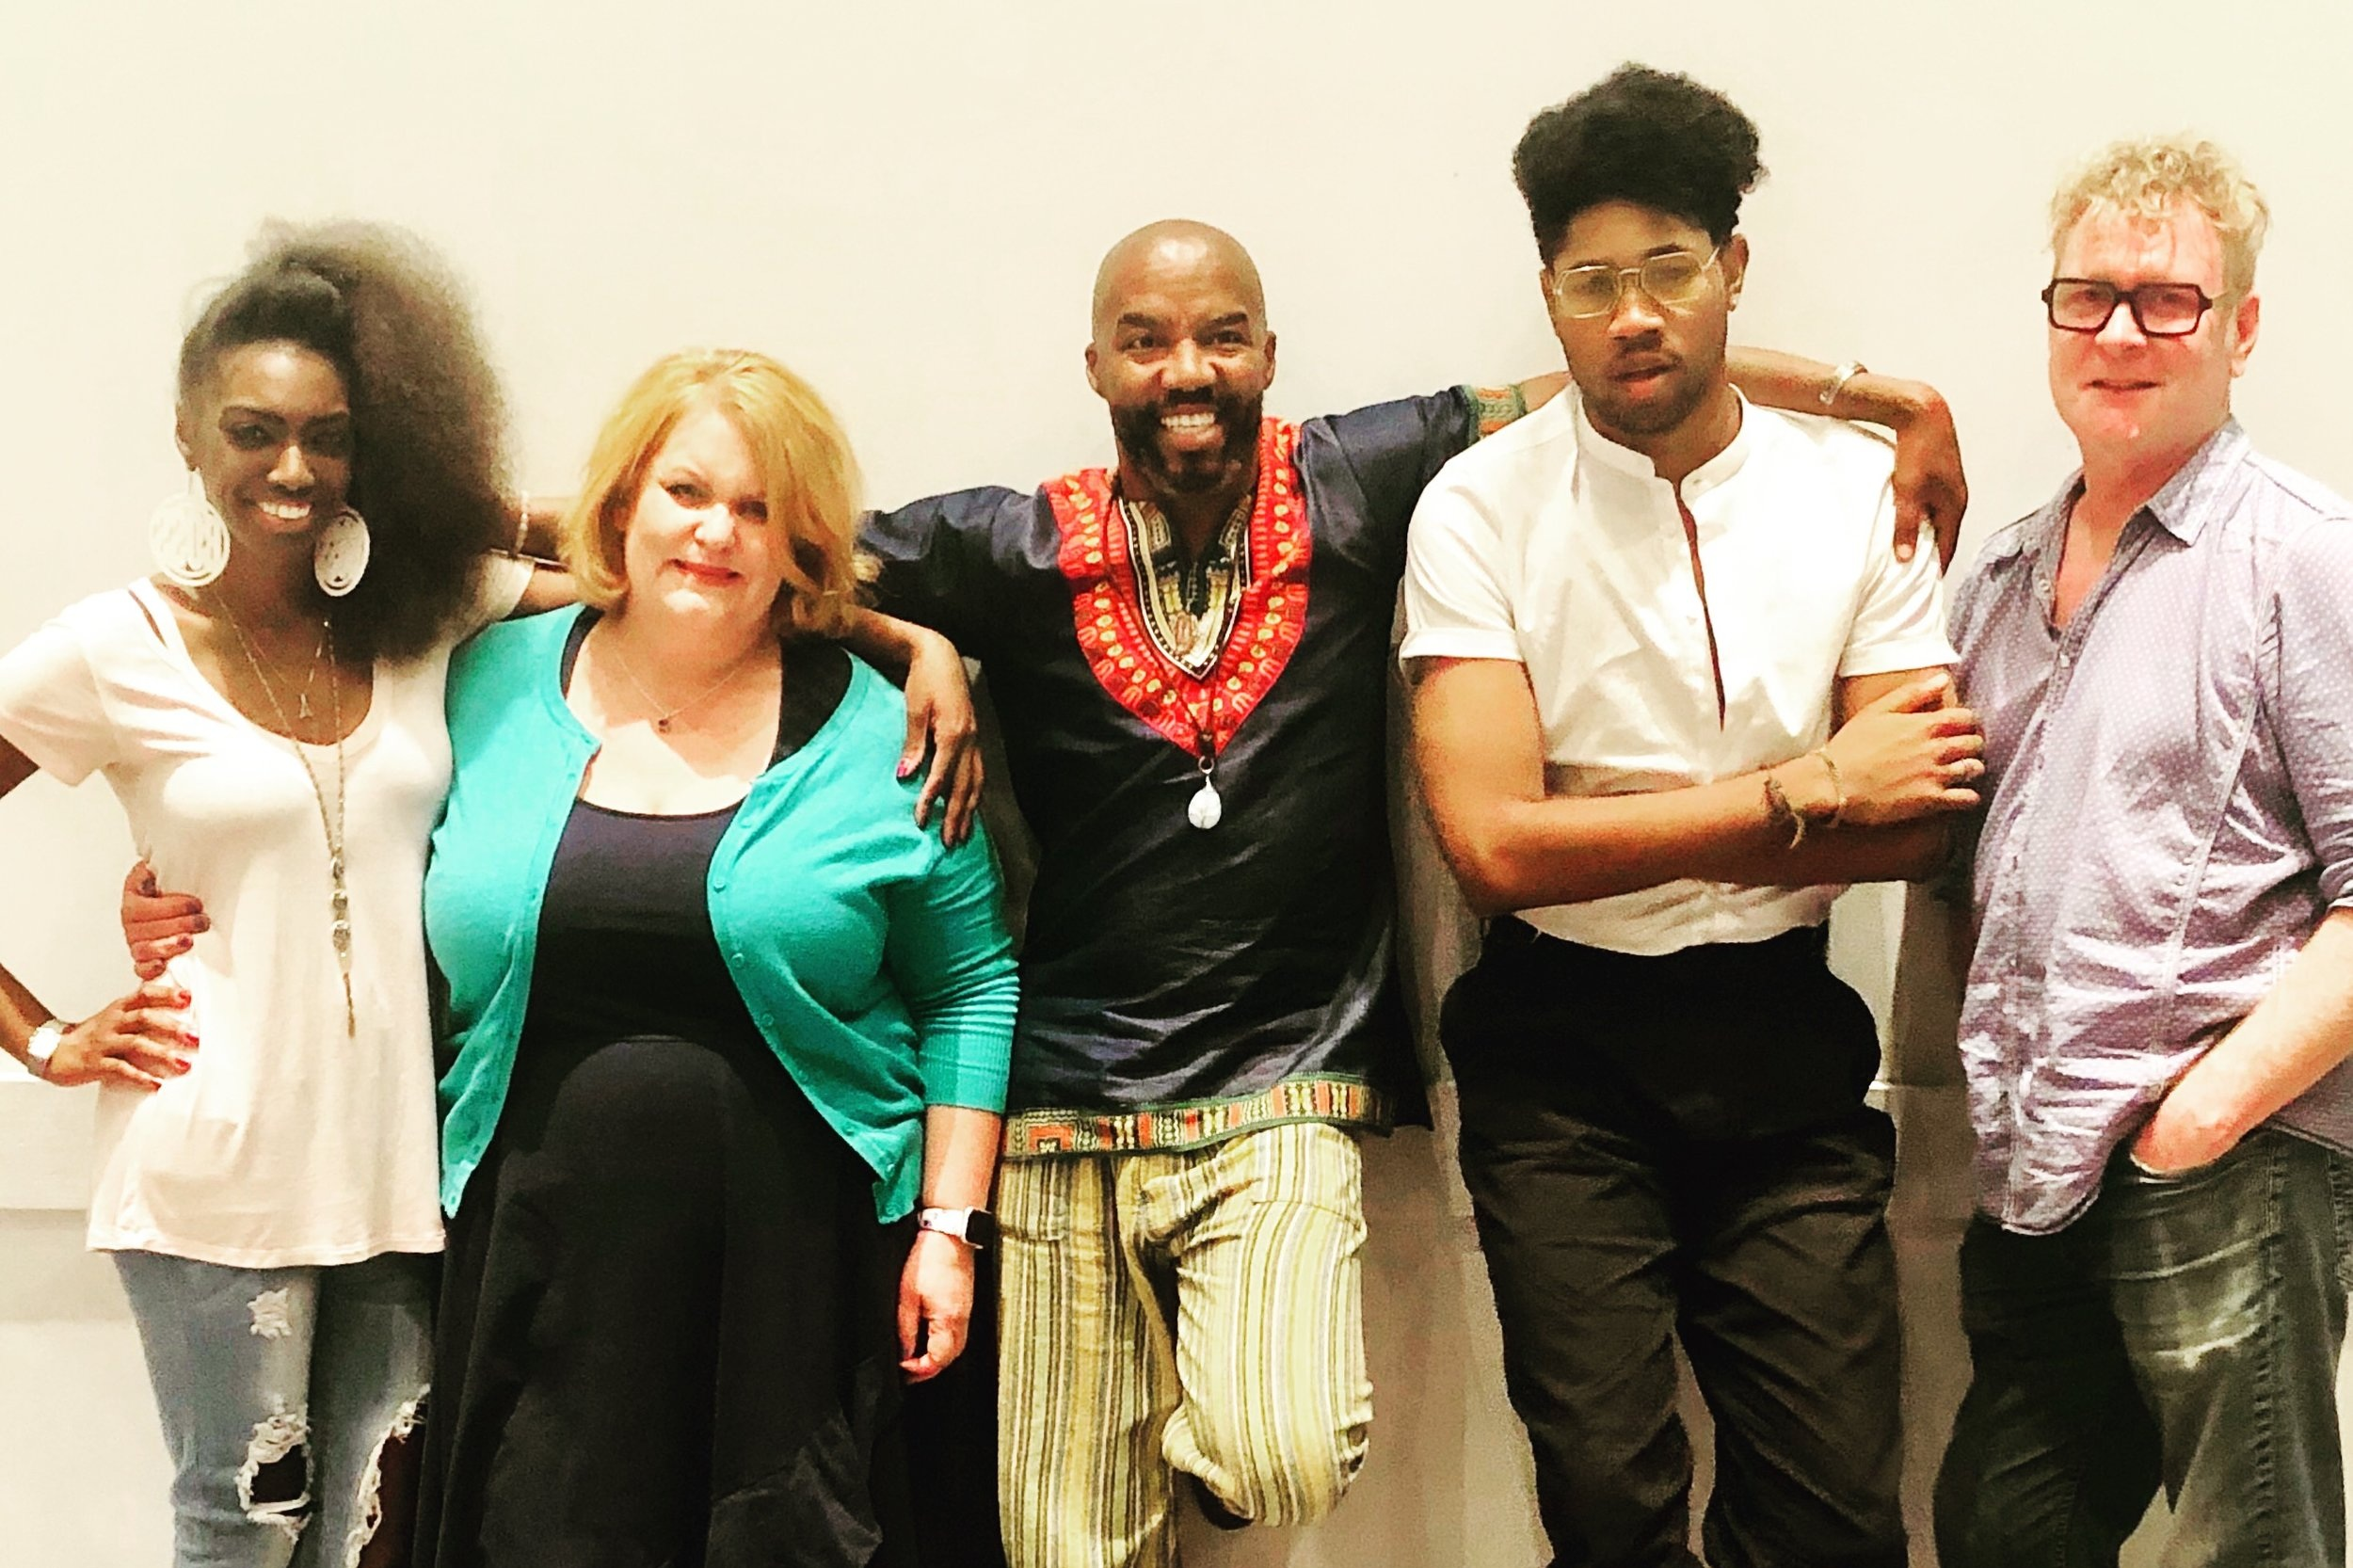 Ilasiea Gray, performer; Emma Messenger, performer; Rodney Hicks, playwright/director; Saxton Jay Walker, performer; Gary Norman, performer